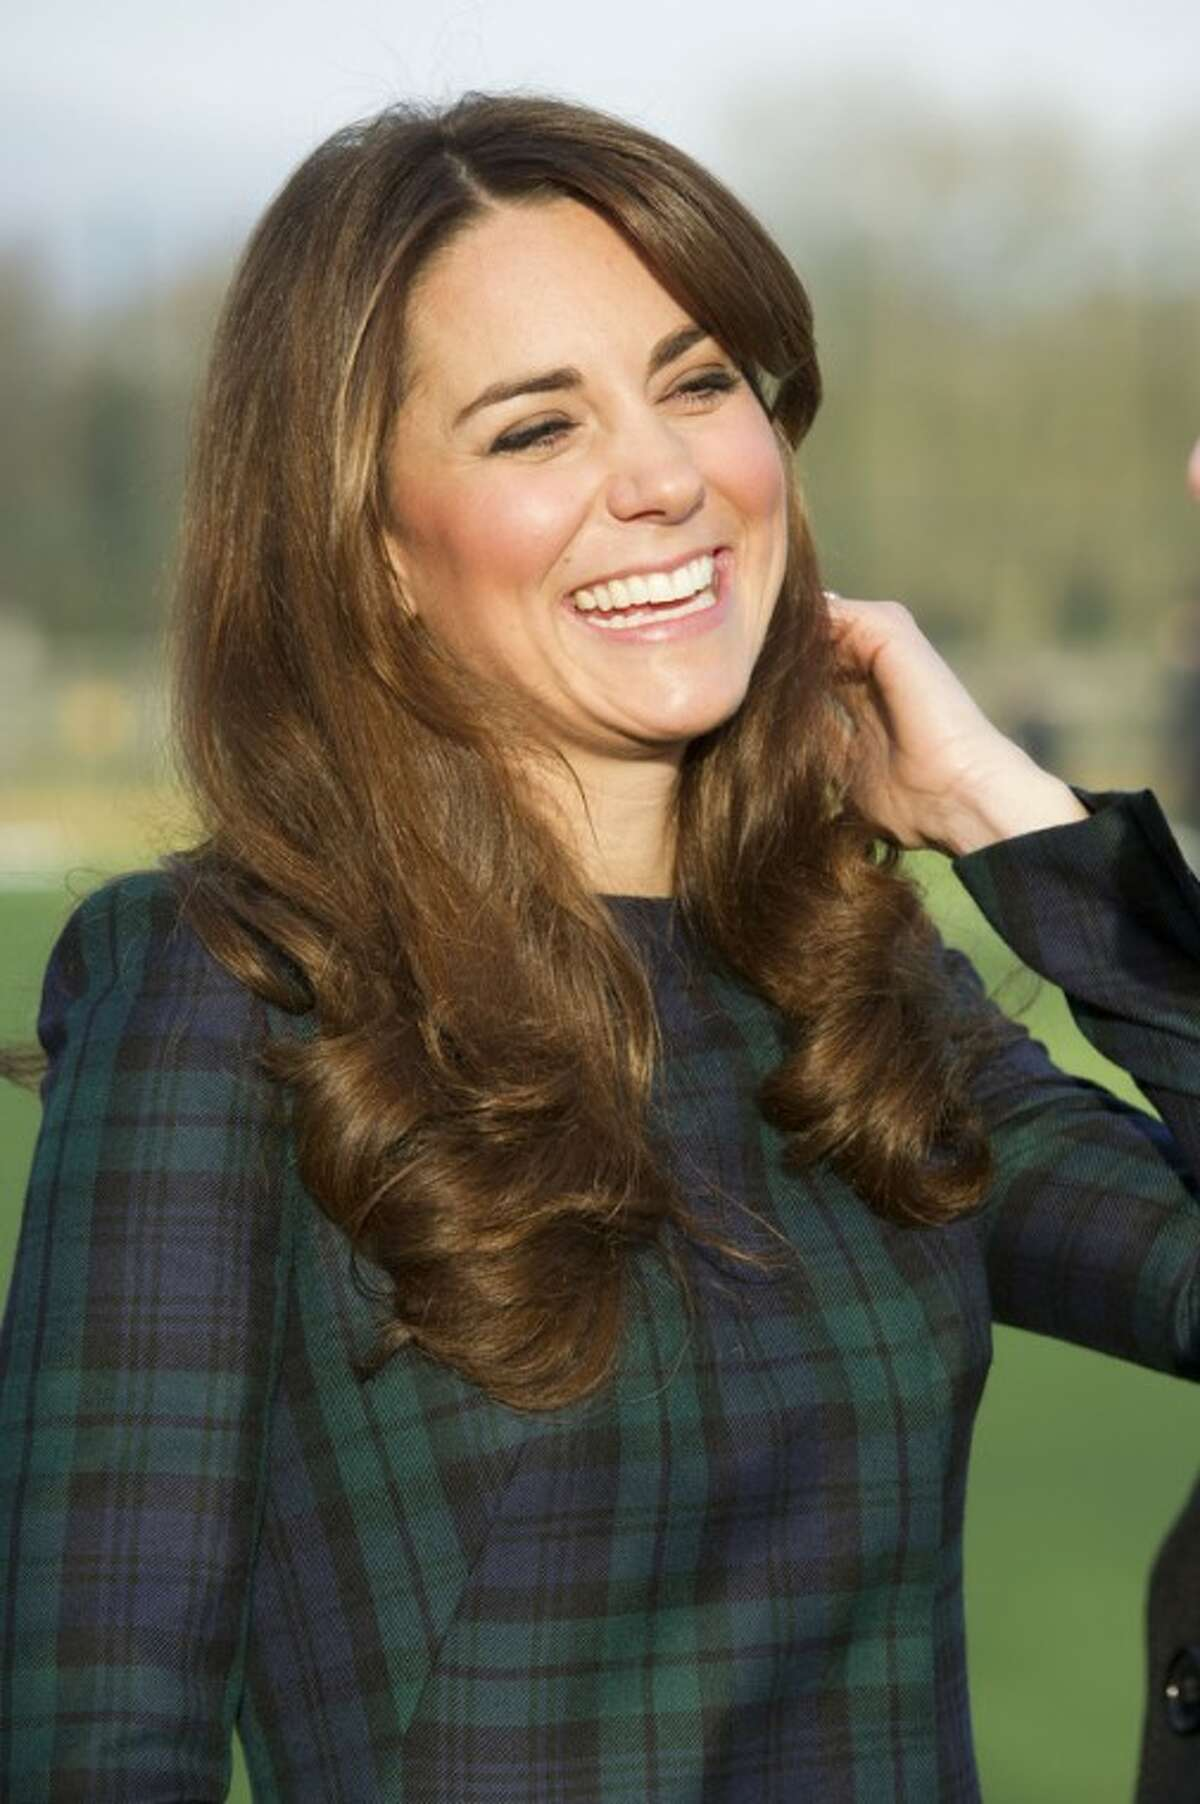 FILE - Kate, the Duchess of Cambridge seen during her visit to St. Andrew?'s School, where she attended school, in Pangbourne, England, in this file photo dated Friday, Nov. 30, 2012. The Duke and Duchess of Cambridge are very pleased to announce that the Duchess of Cambridge is expecting a baby, St James's Palace officially announced Monday Dec. 3, 2012. (AP Photo/Arthur Edwards, File)